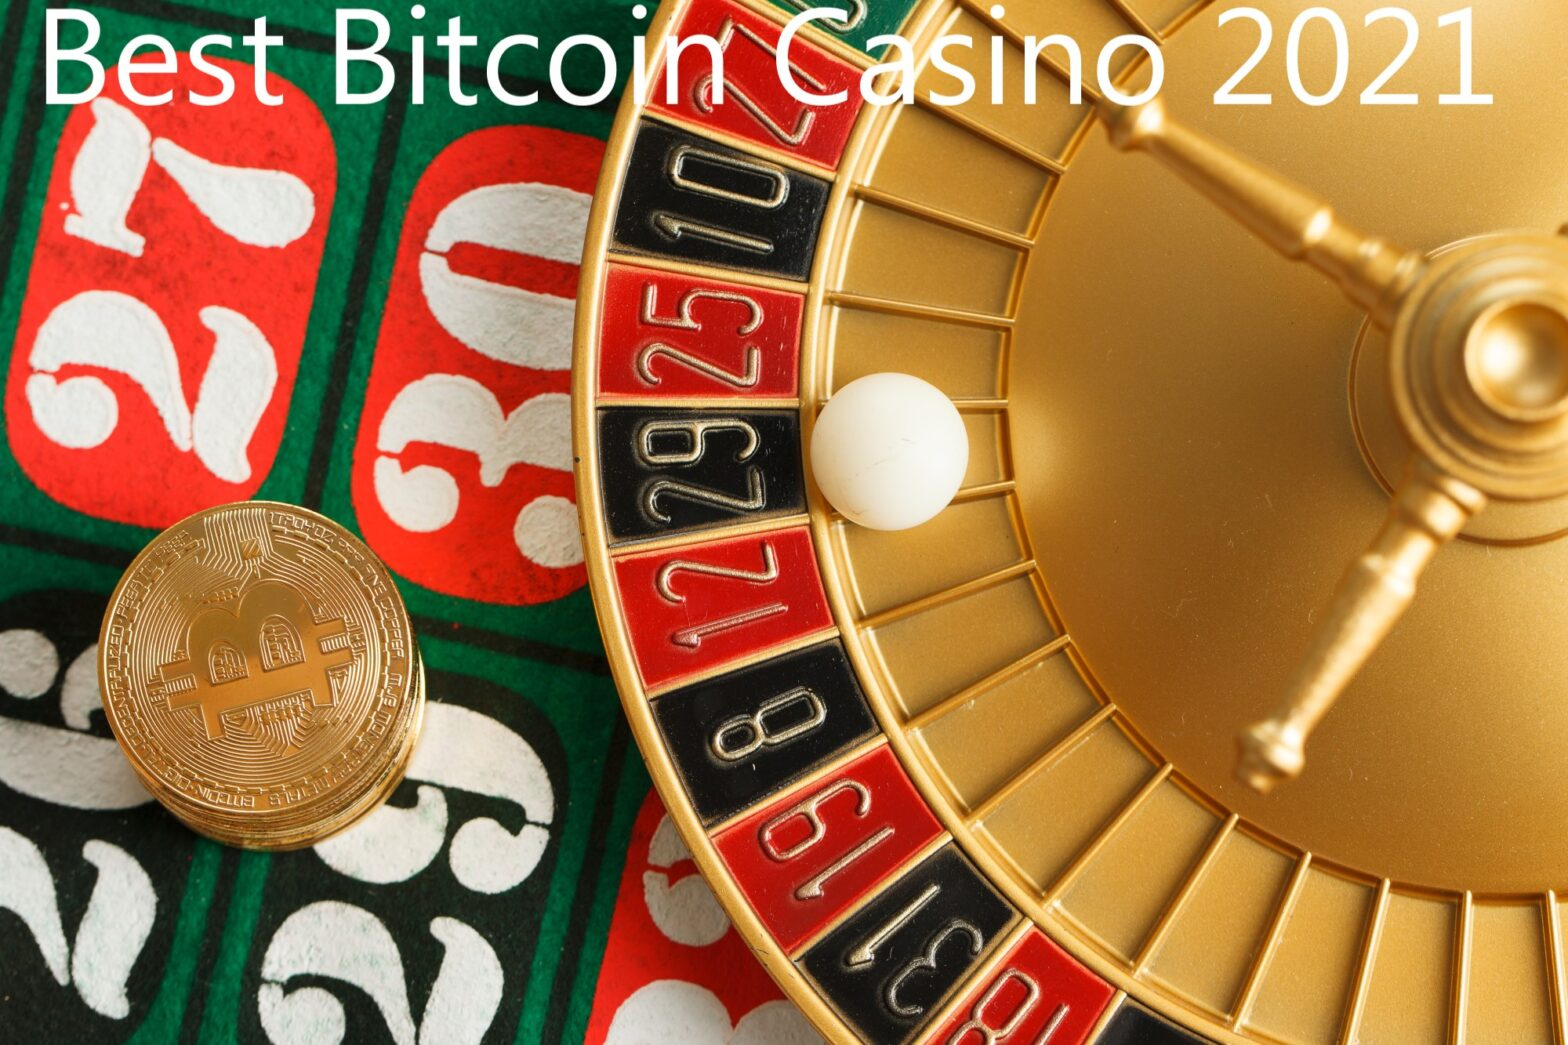 Best Bitcoin Casino 2021